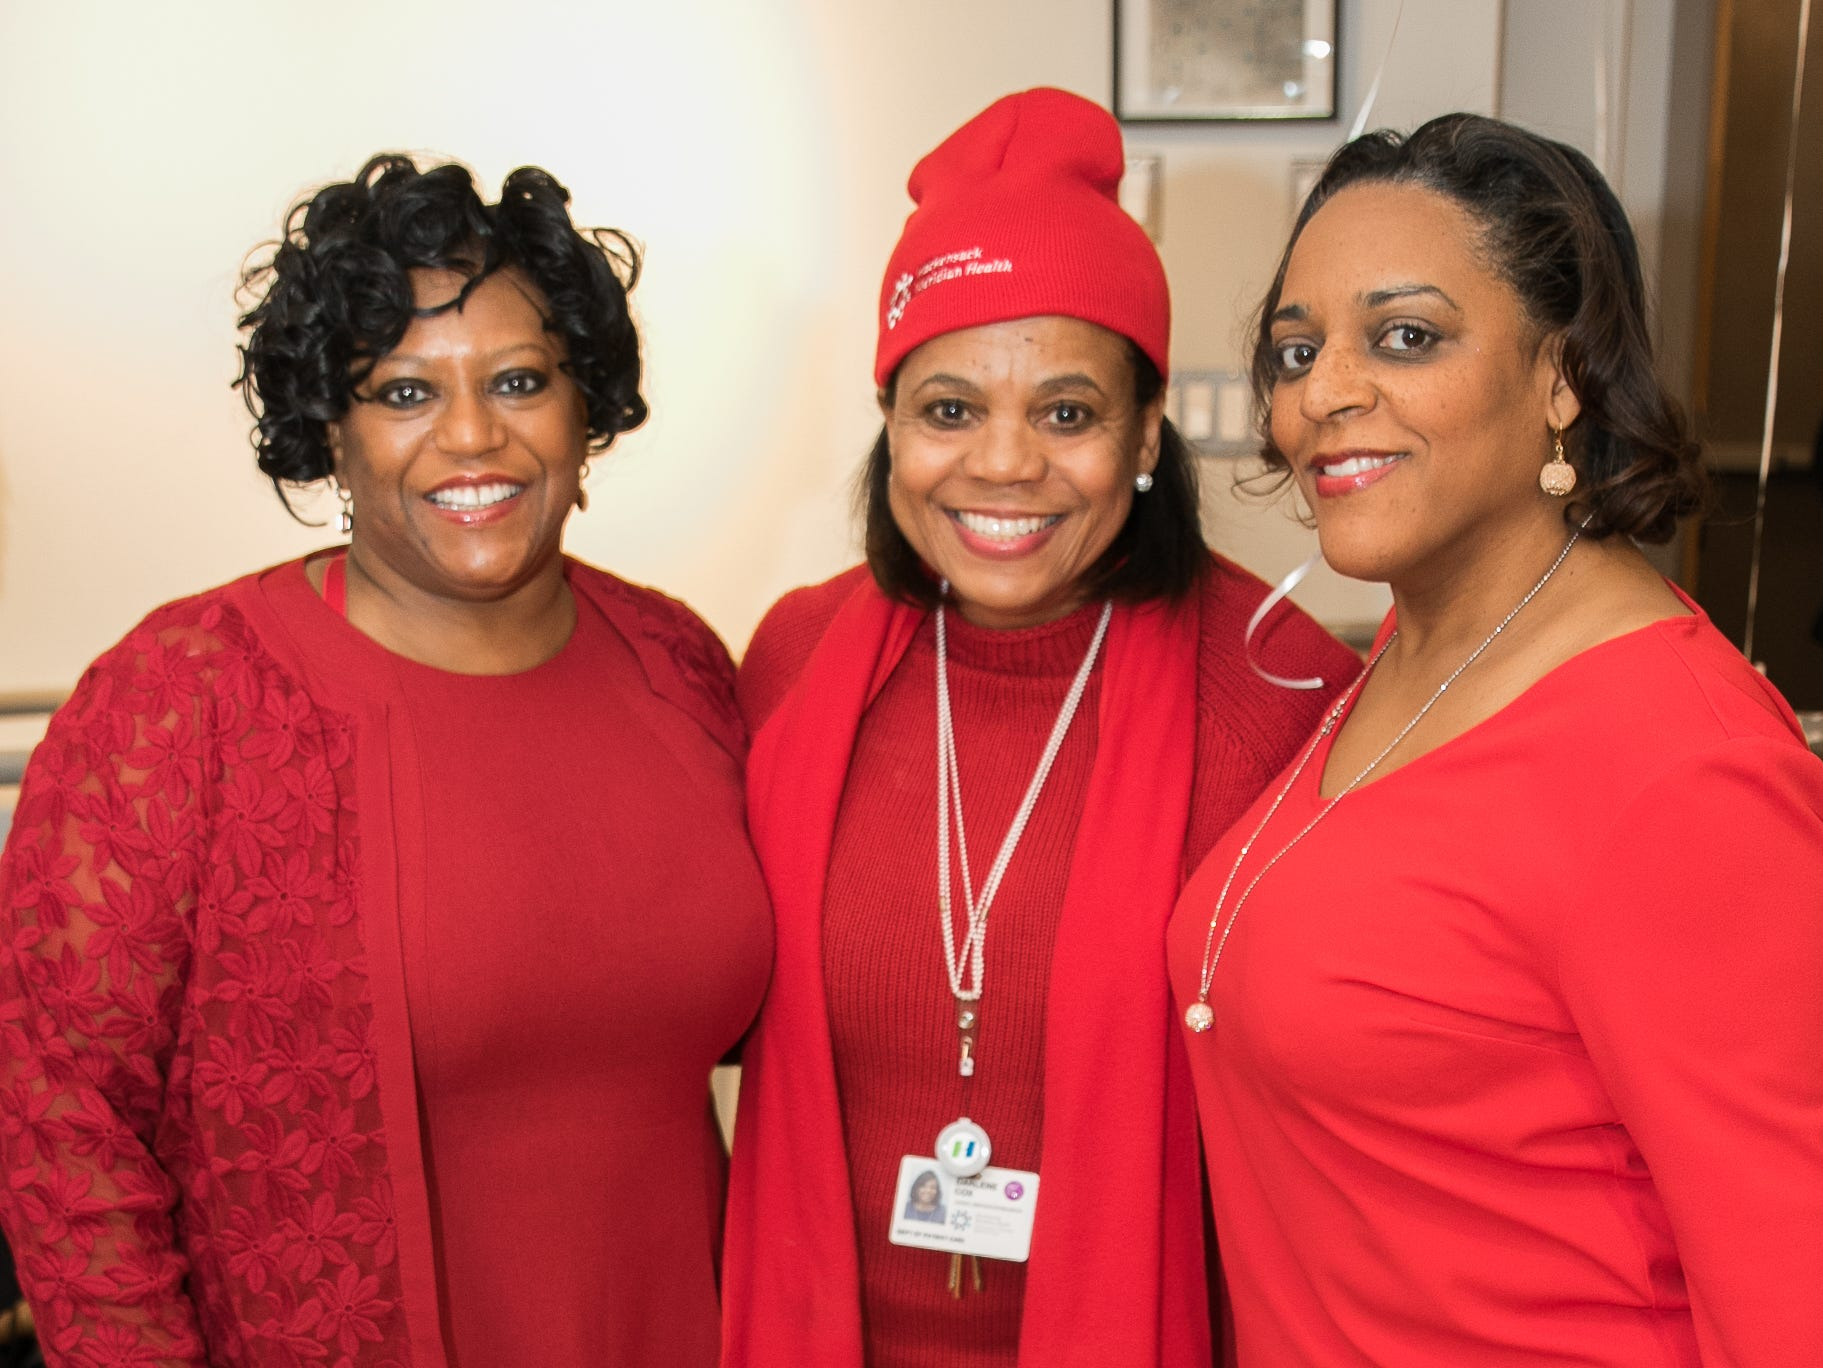 Dr. Menen Mathias, Dr. Darlene Cox, Dr. Traci Vurgess. The National Coalition of Black Women of Bergen and Passaic Counties held its annual Heart Healthy Go Red Event at The Hackensack Performing Arts Theater. 02/01/2019